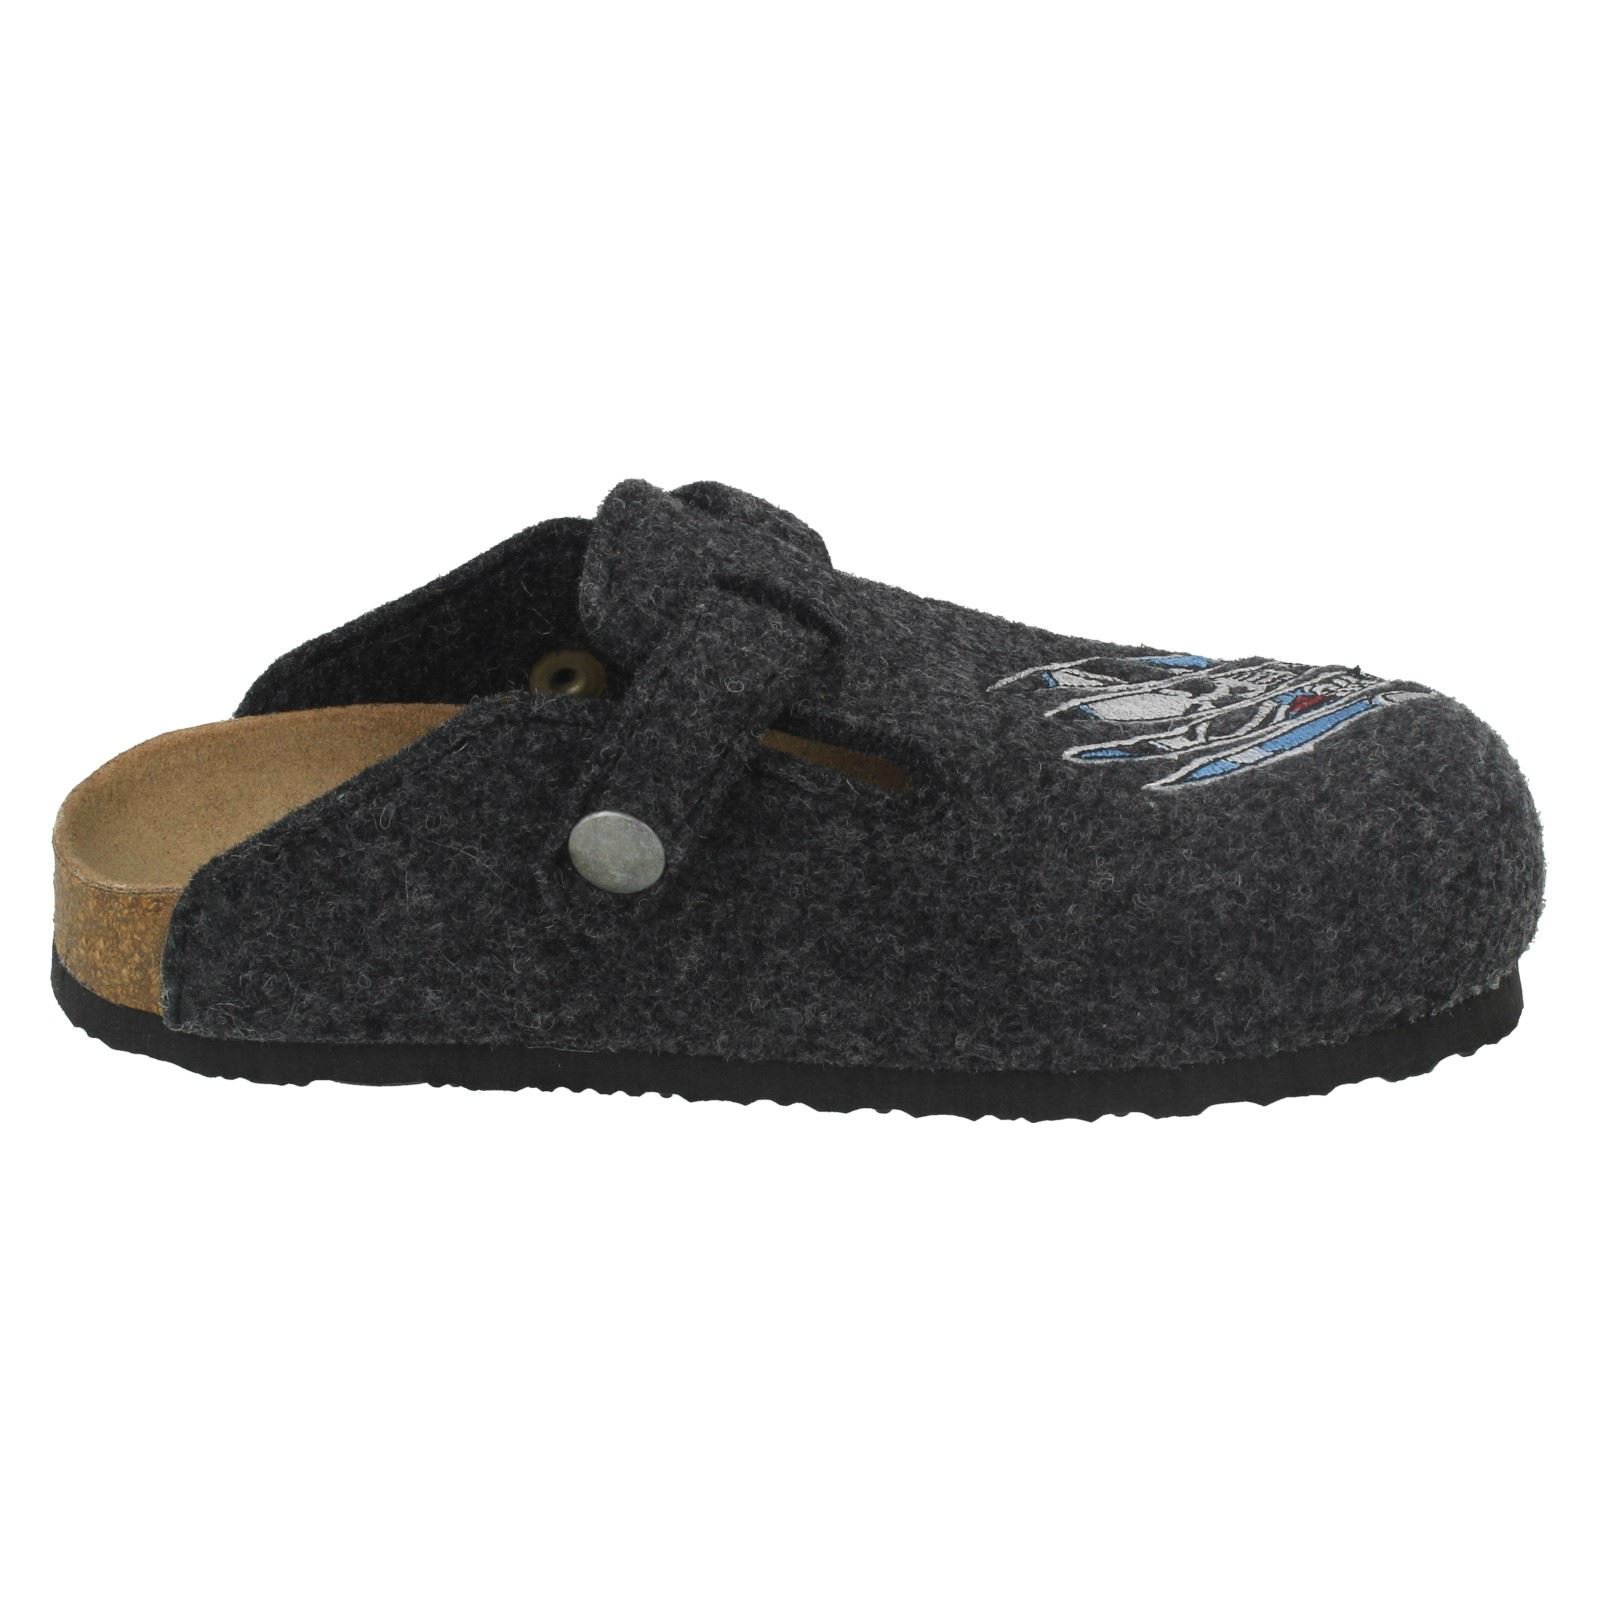 Dr Scholl Boys Casual Mules - Dakota Jr Skull